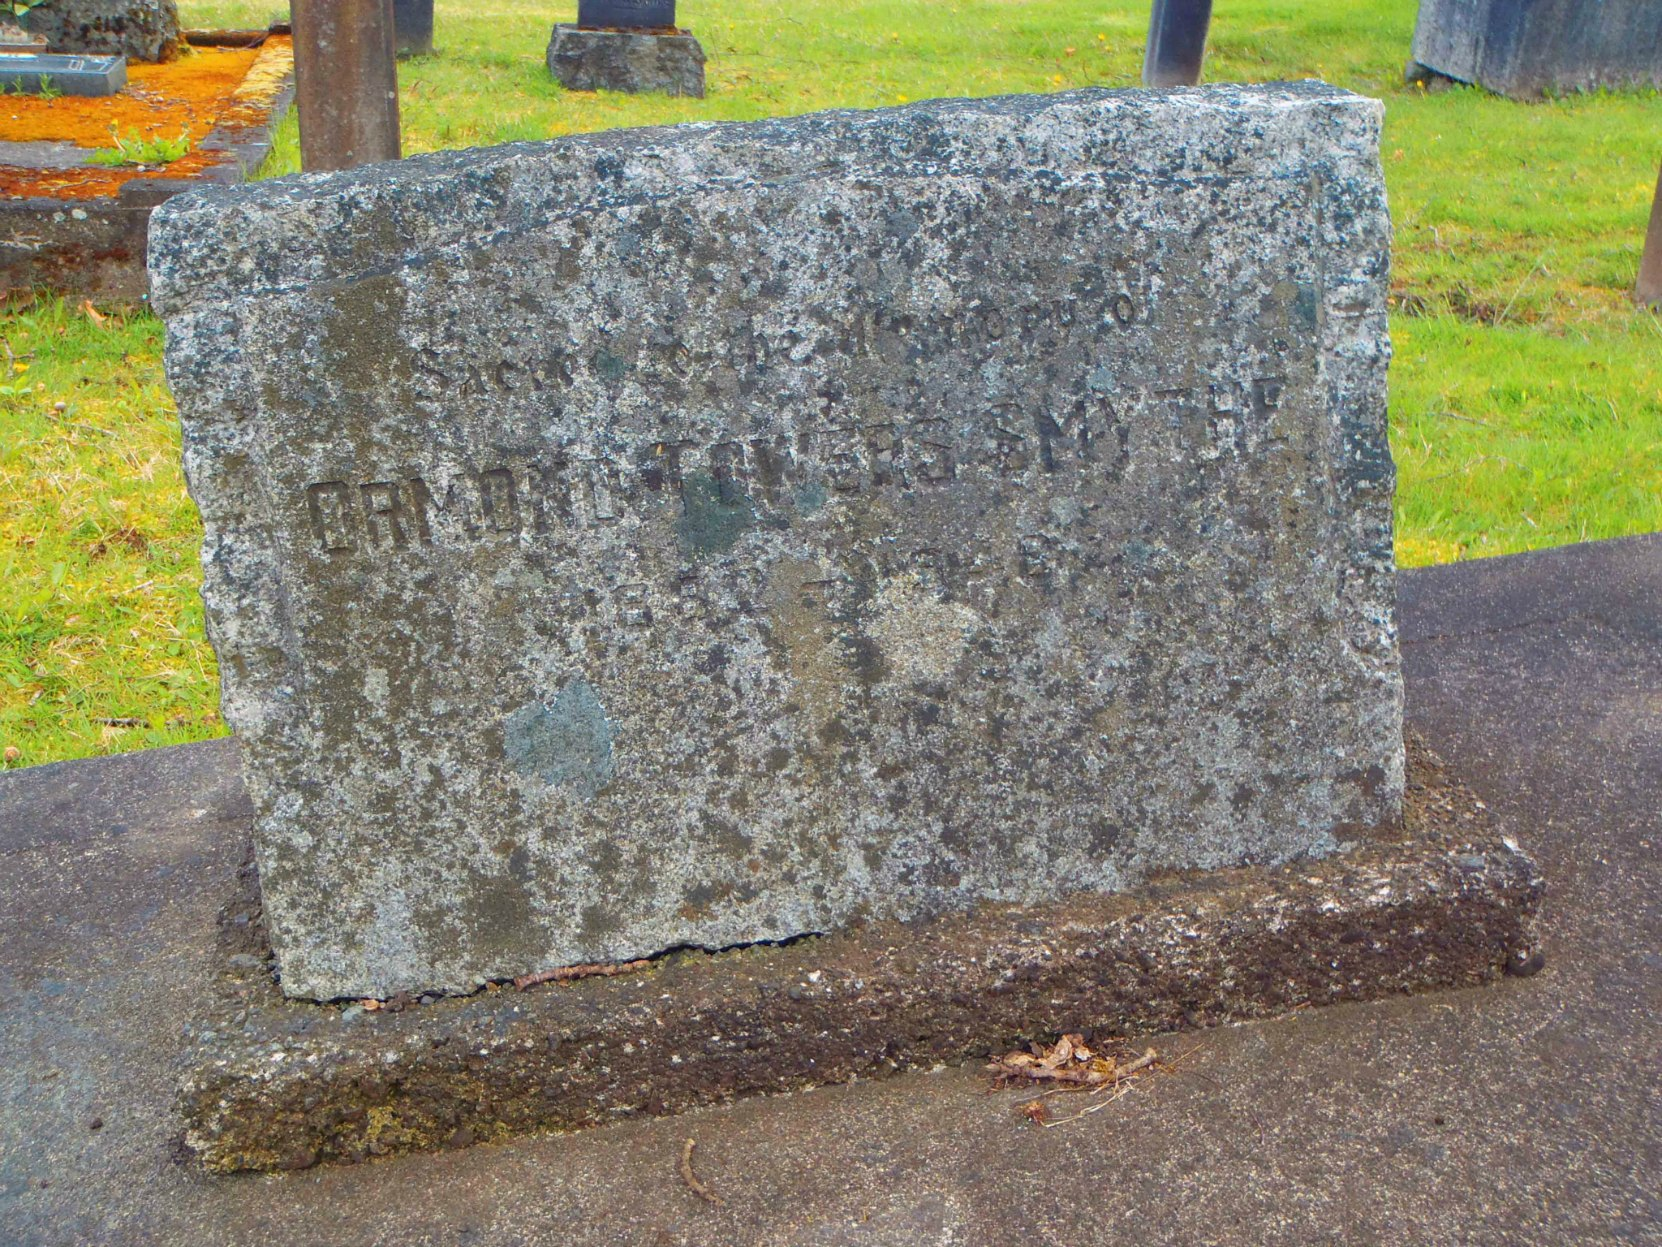 Ormond Towers Smythe grave marker, Mountain View Cemetery, North Cowichan, B.C.